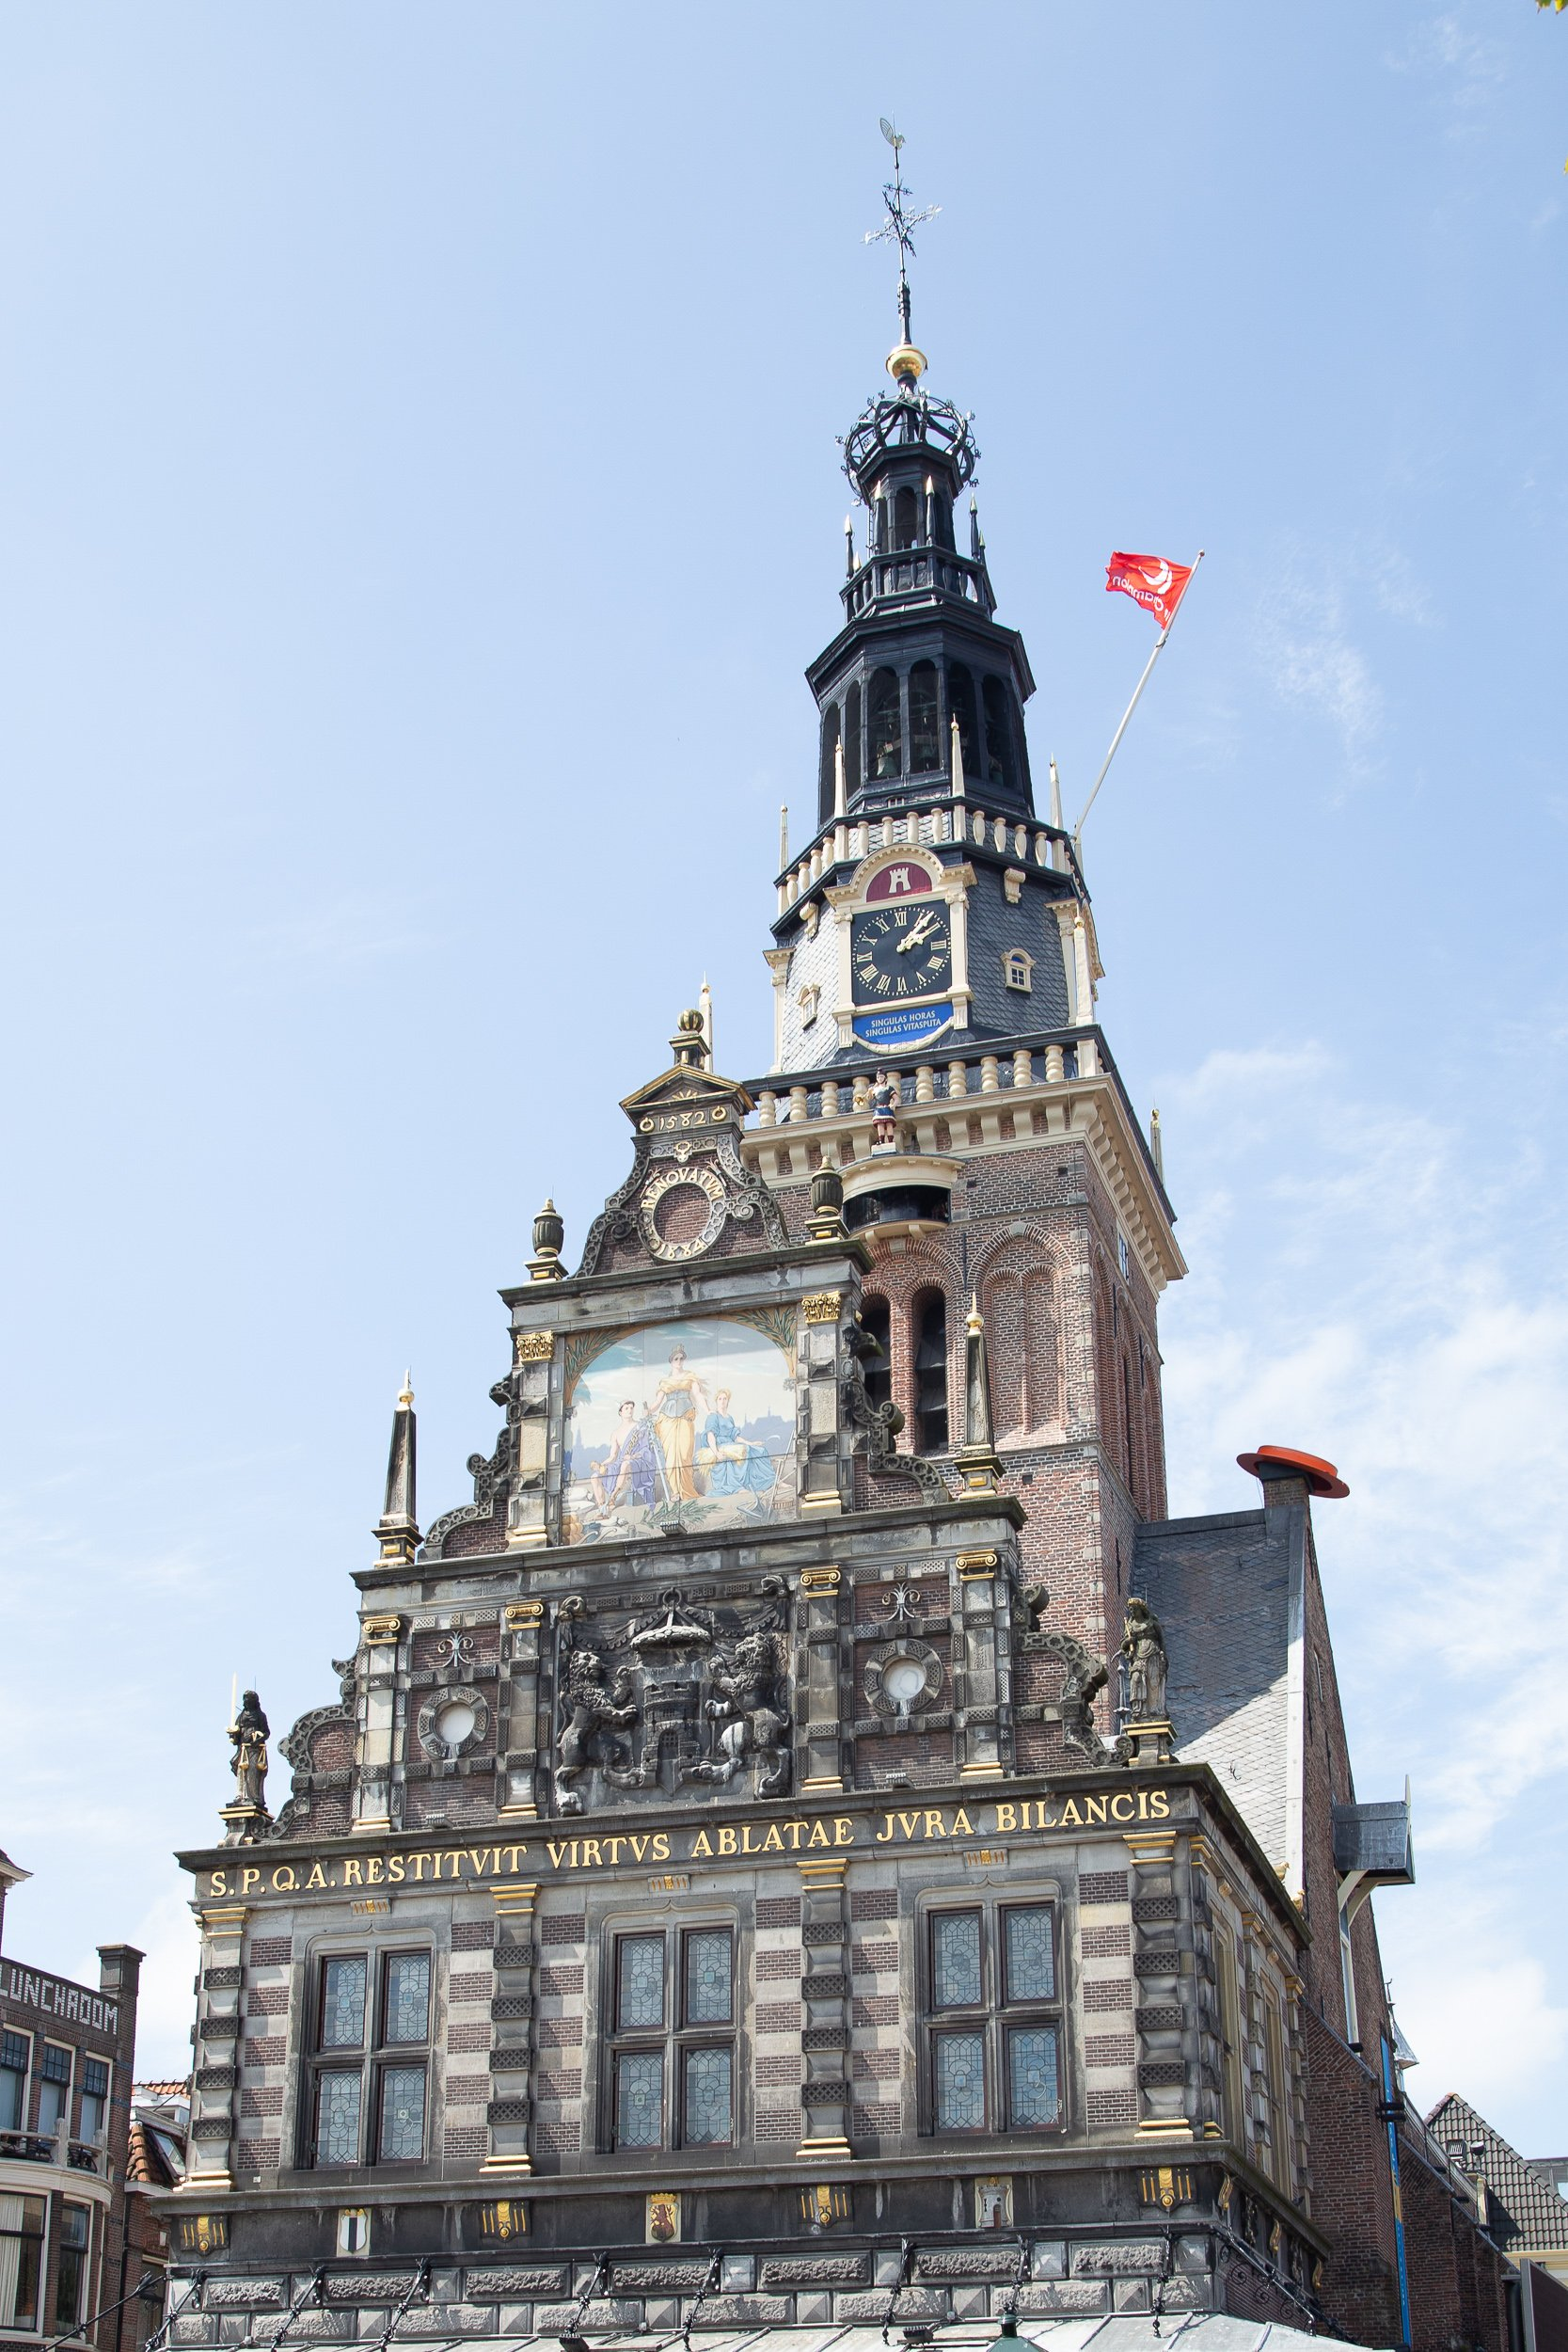 The historical building of Waag on Waagplein in Alkmaar Netherlands